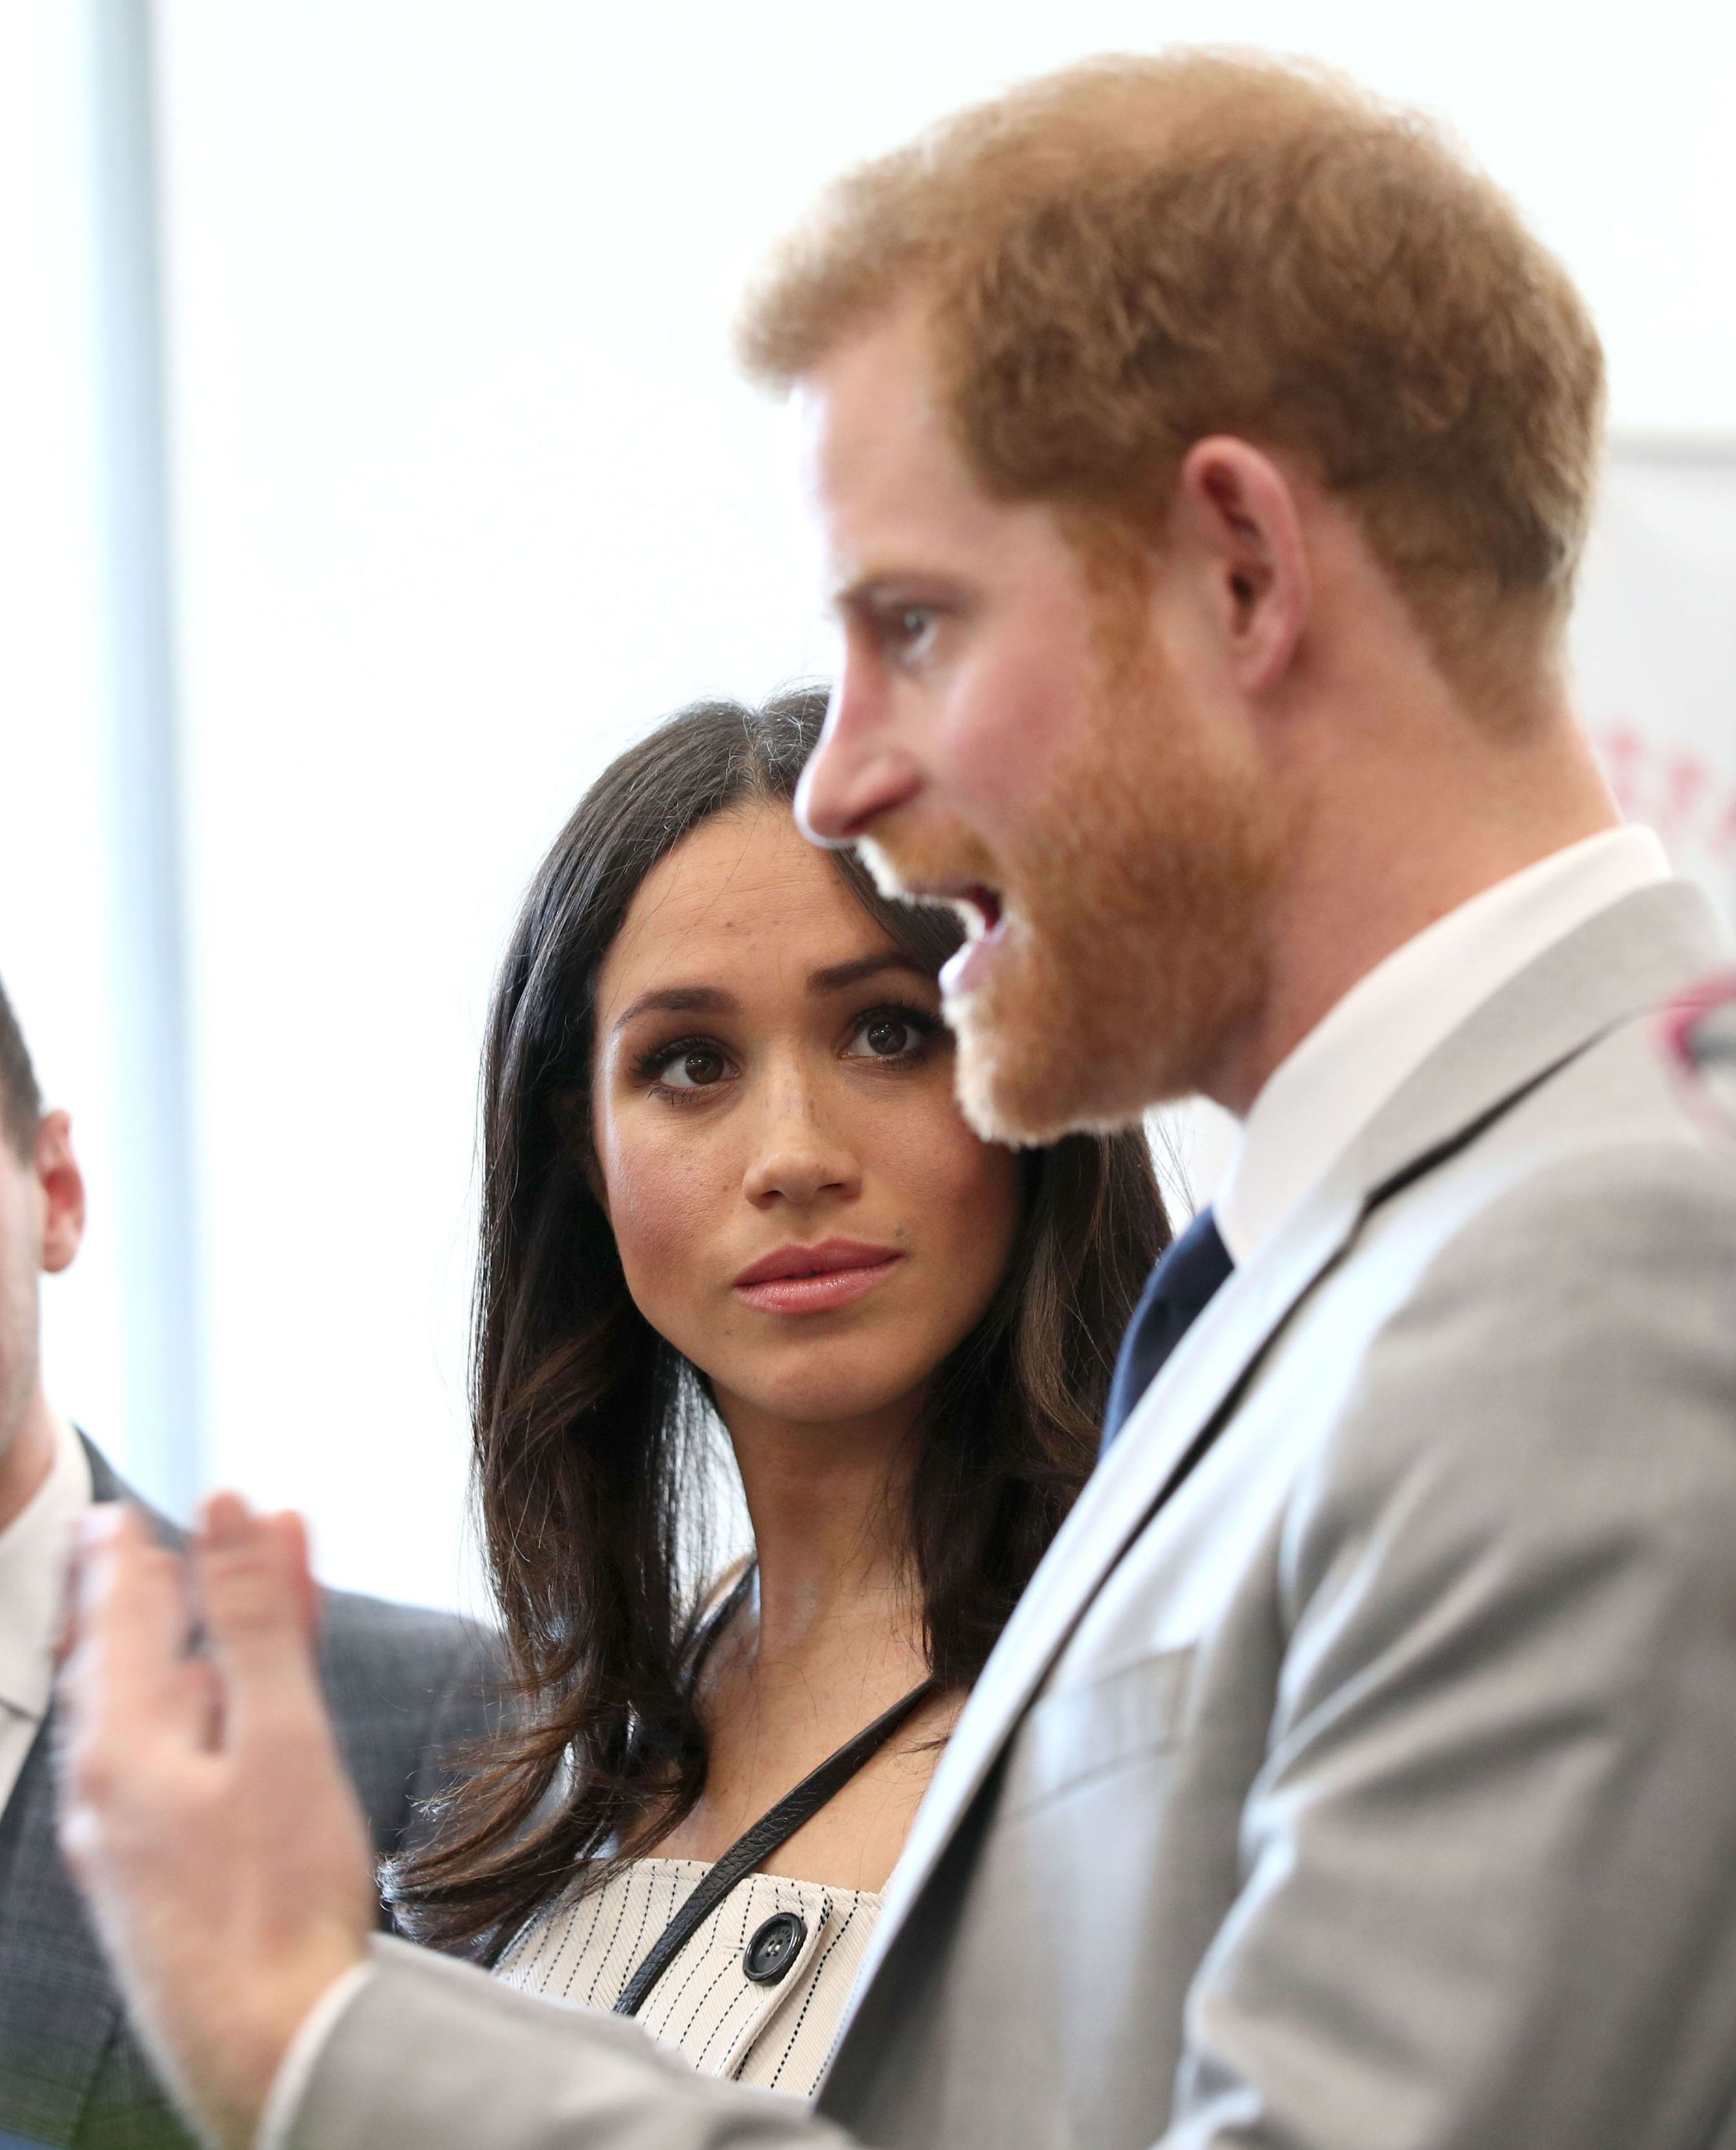 REVIEW OF THE DECADE - ROYAL File photo dated 18/04/18 of Meghan Markle looking at Prince Harry during a reception for delegates from the Commonwealth Youth Forum at the Queen Elizabeth II Conference Centre, London.